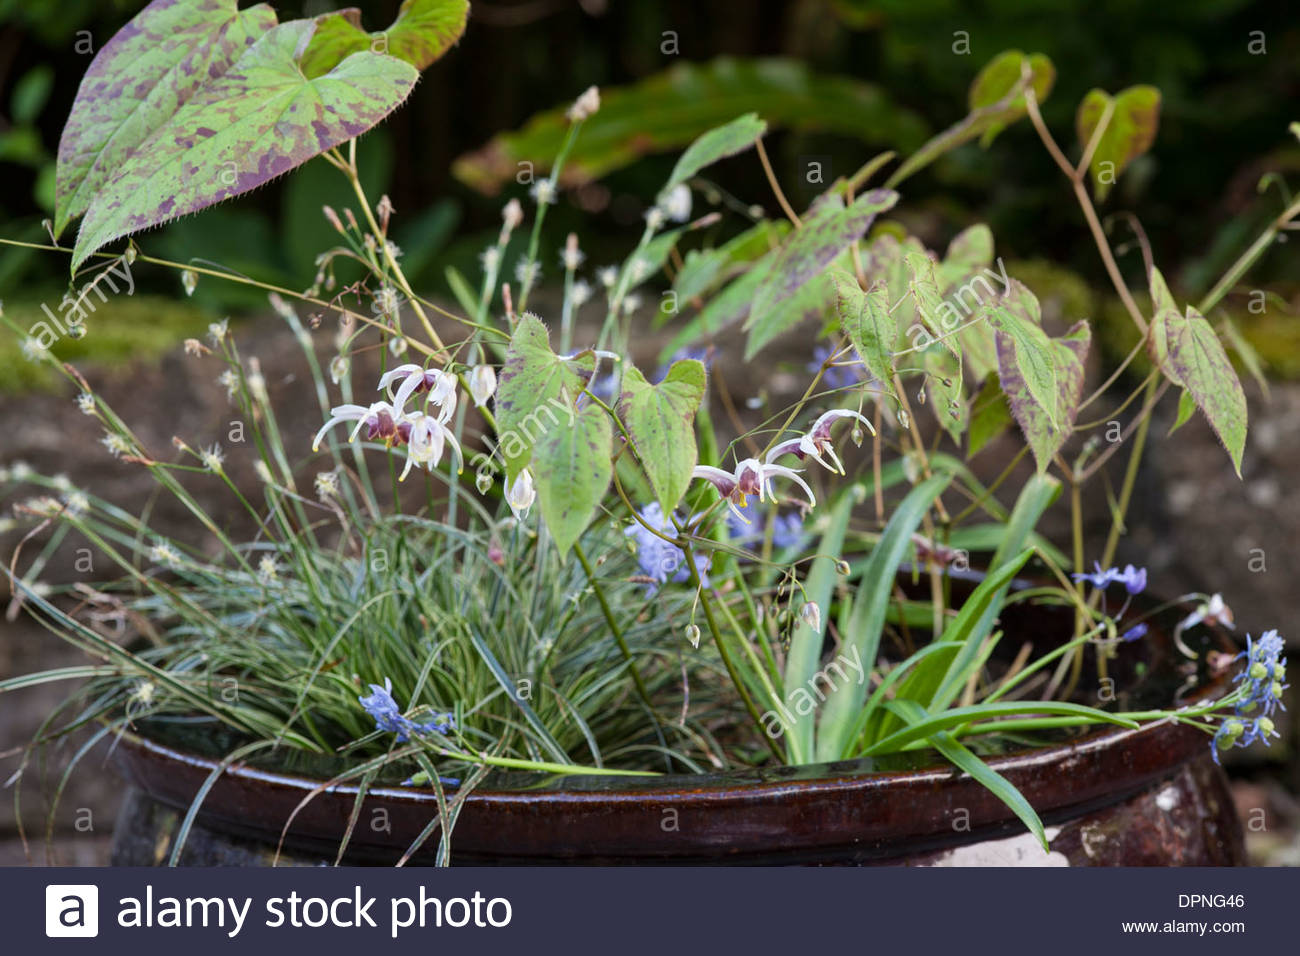 Epimedium 'Persian Carpet' in container - Stock Image